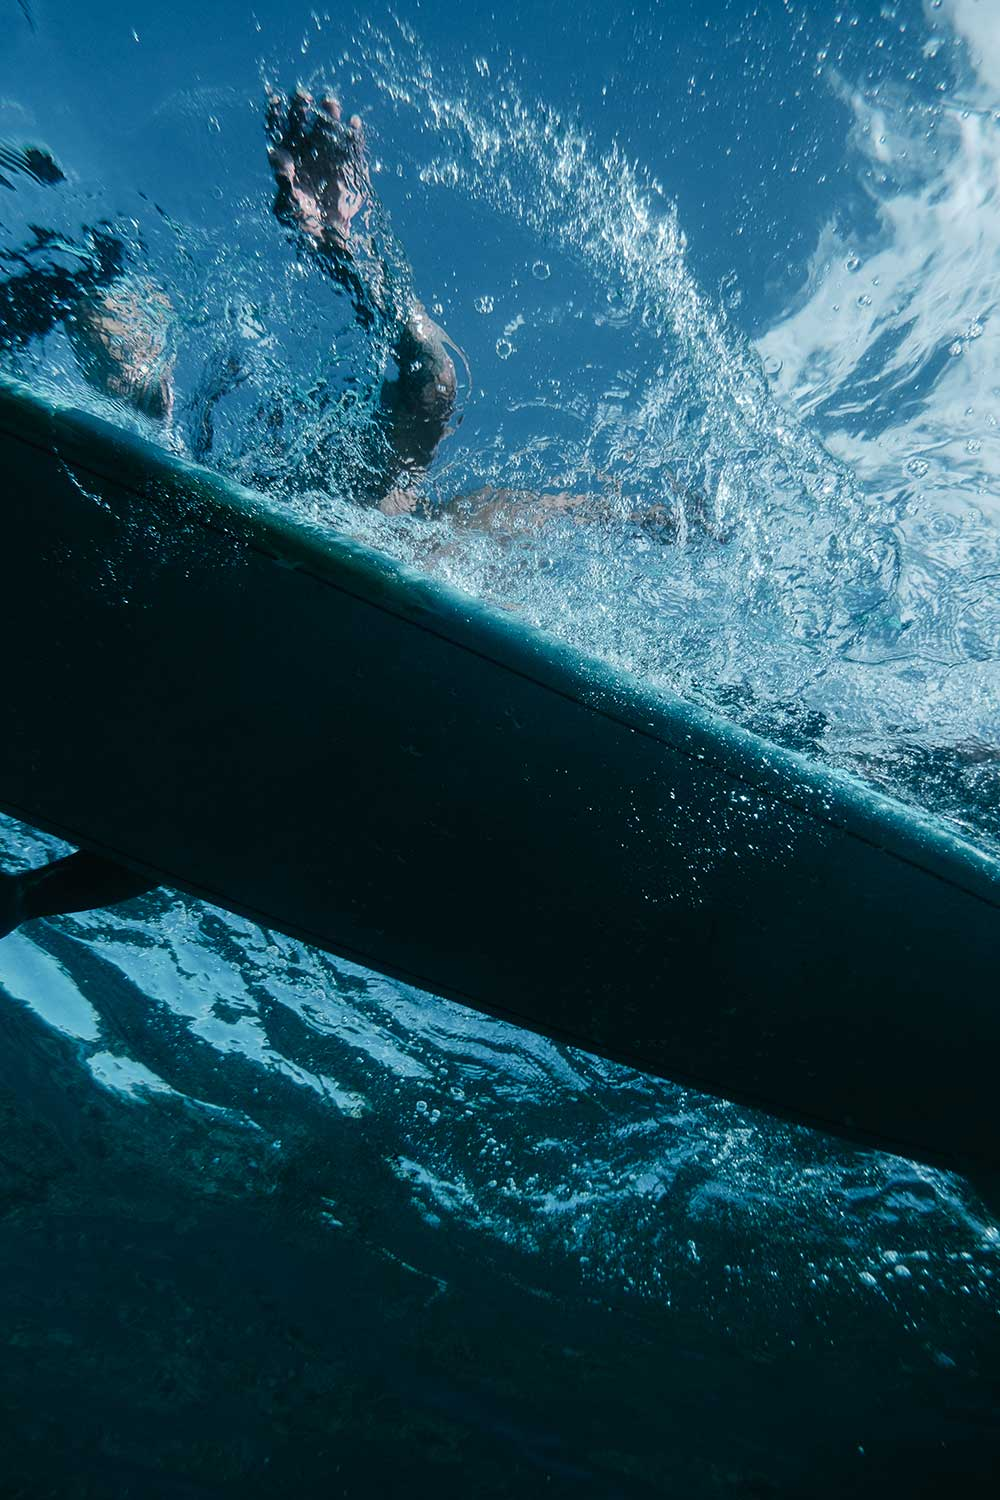 Underwater photo of a surf board and surfer paddling